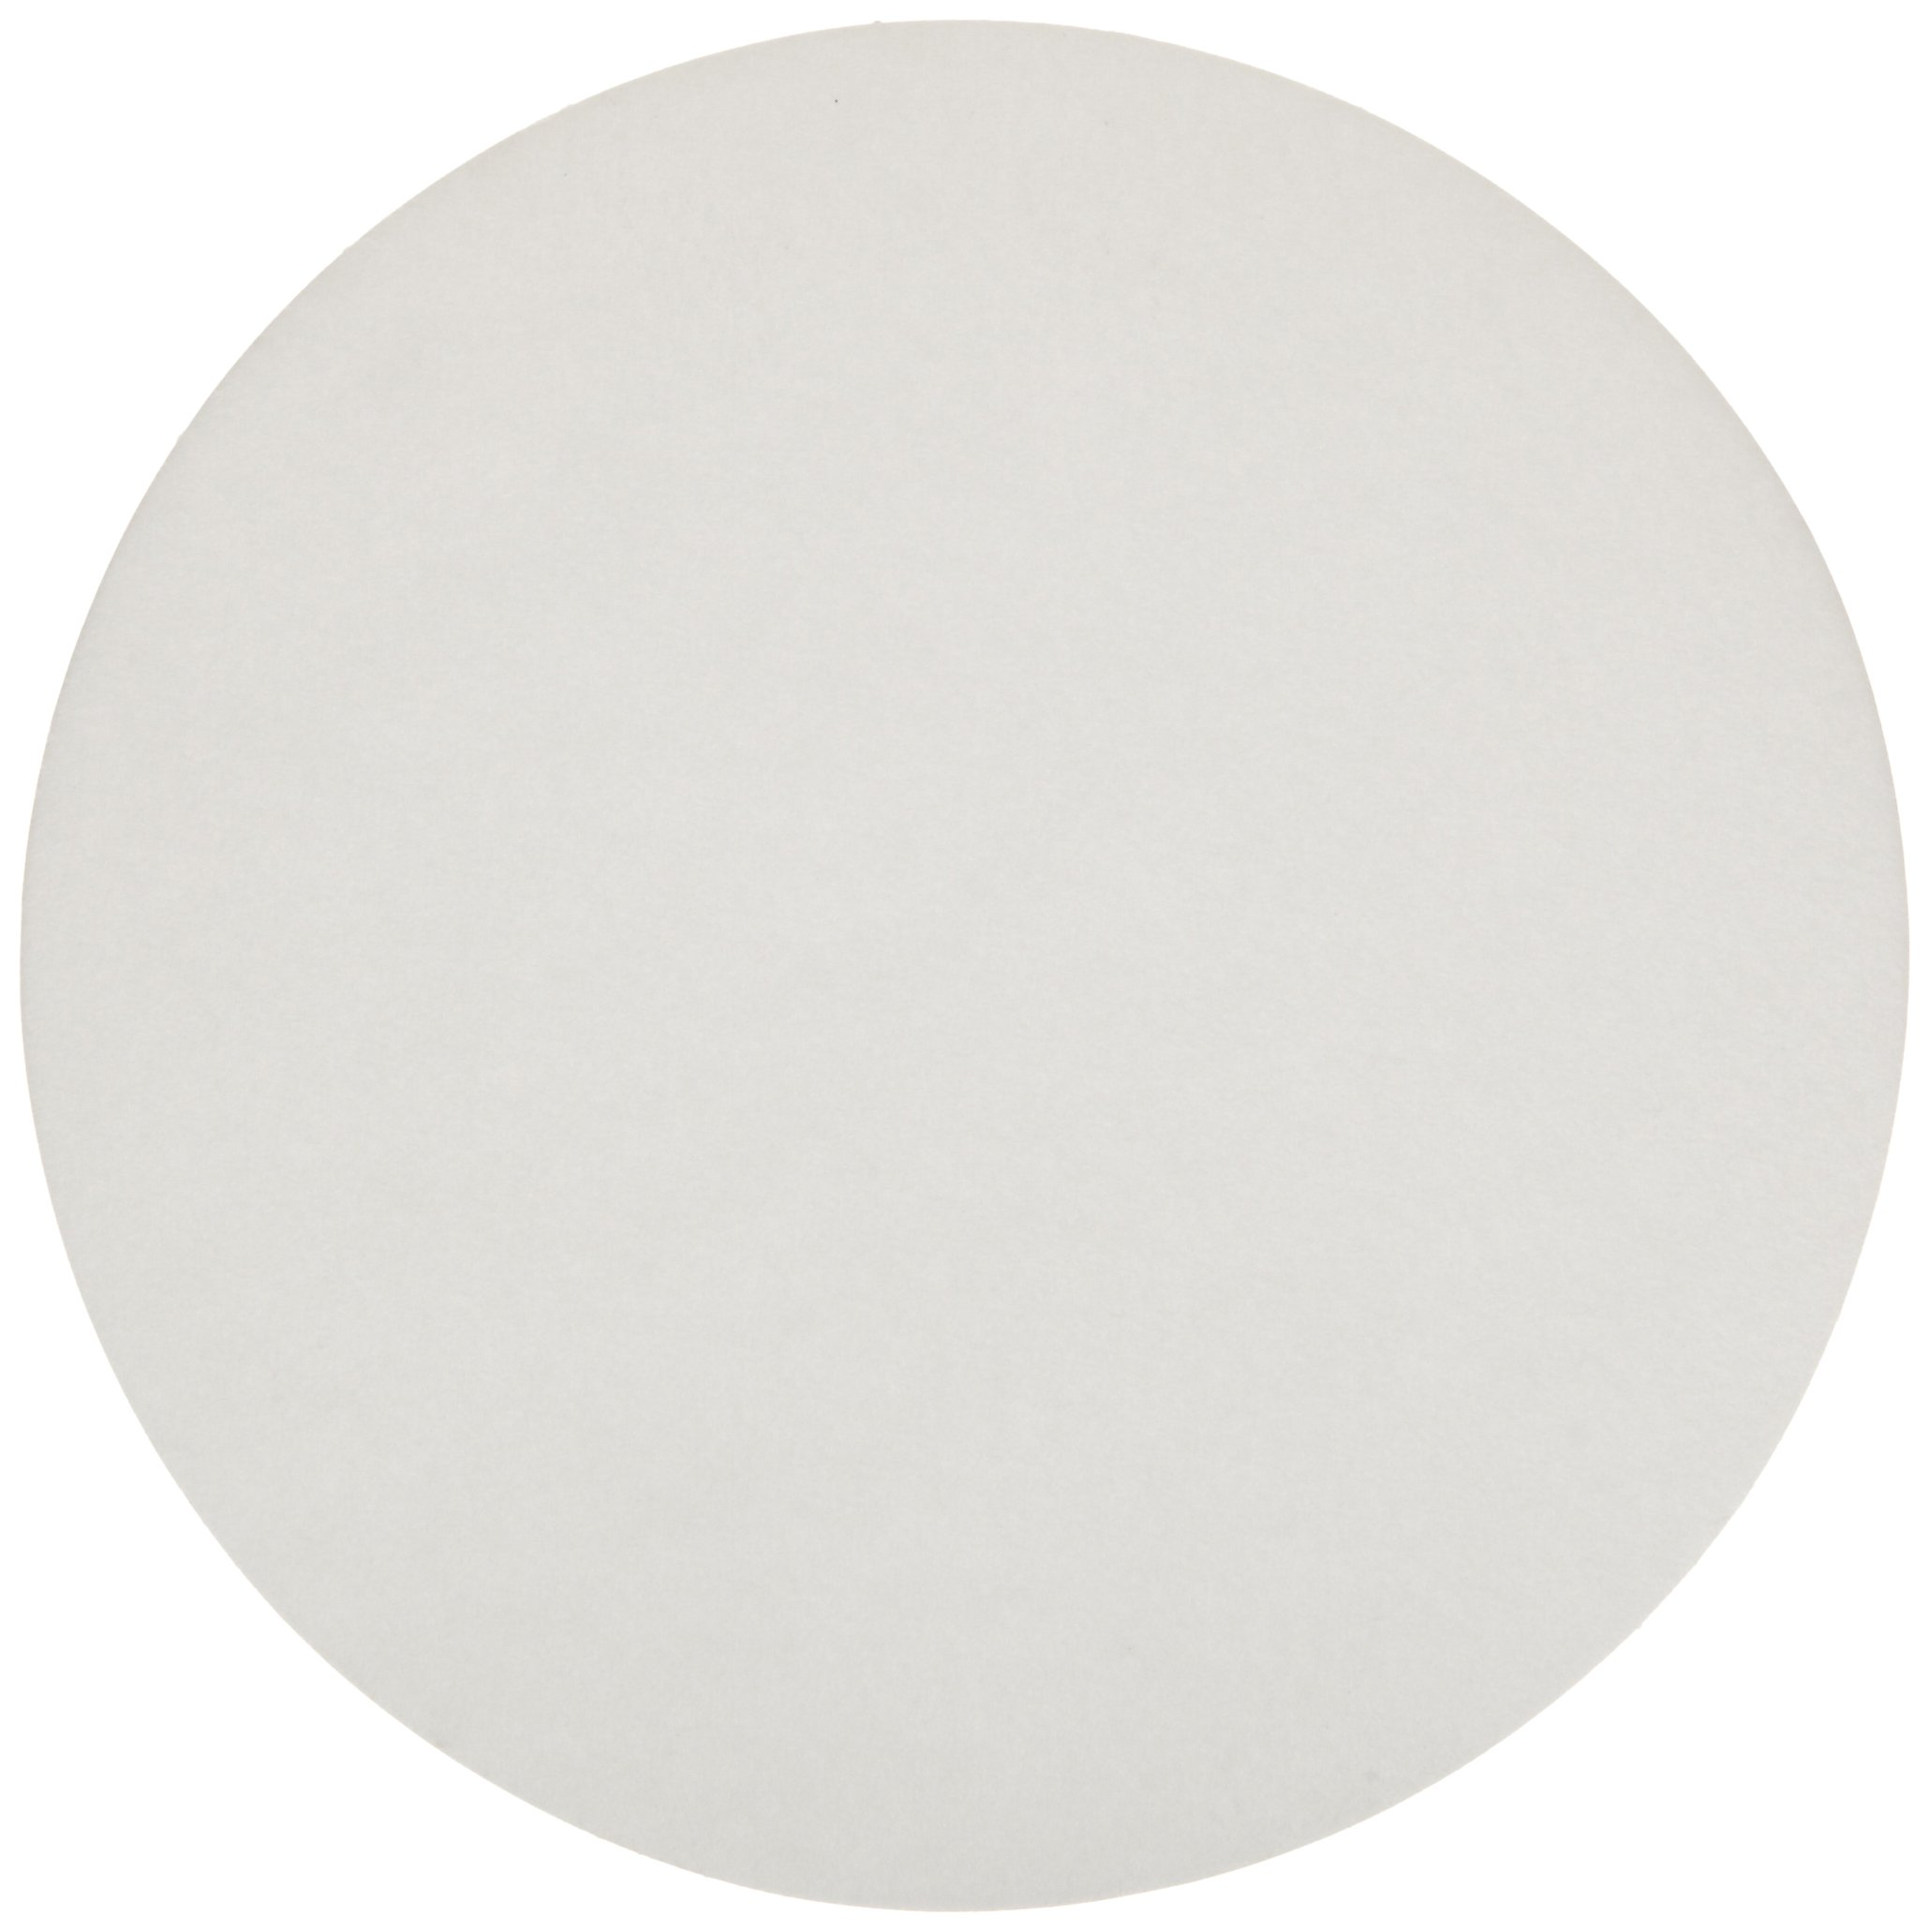 Ahlstrom 6310-2400 Qualitative Filter Paper, 10 Micron, Medium Flow, Grade 631, 24cm Diameter (Pack of 100) by Ahlstrom